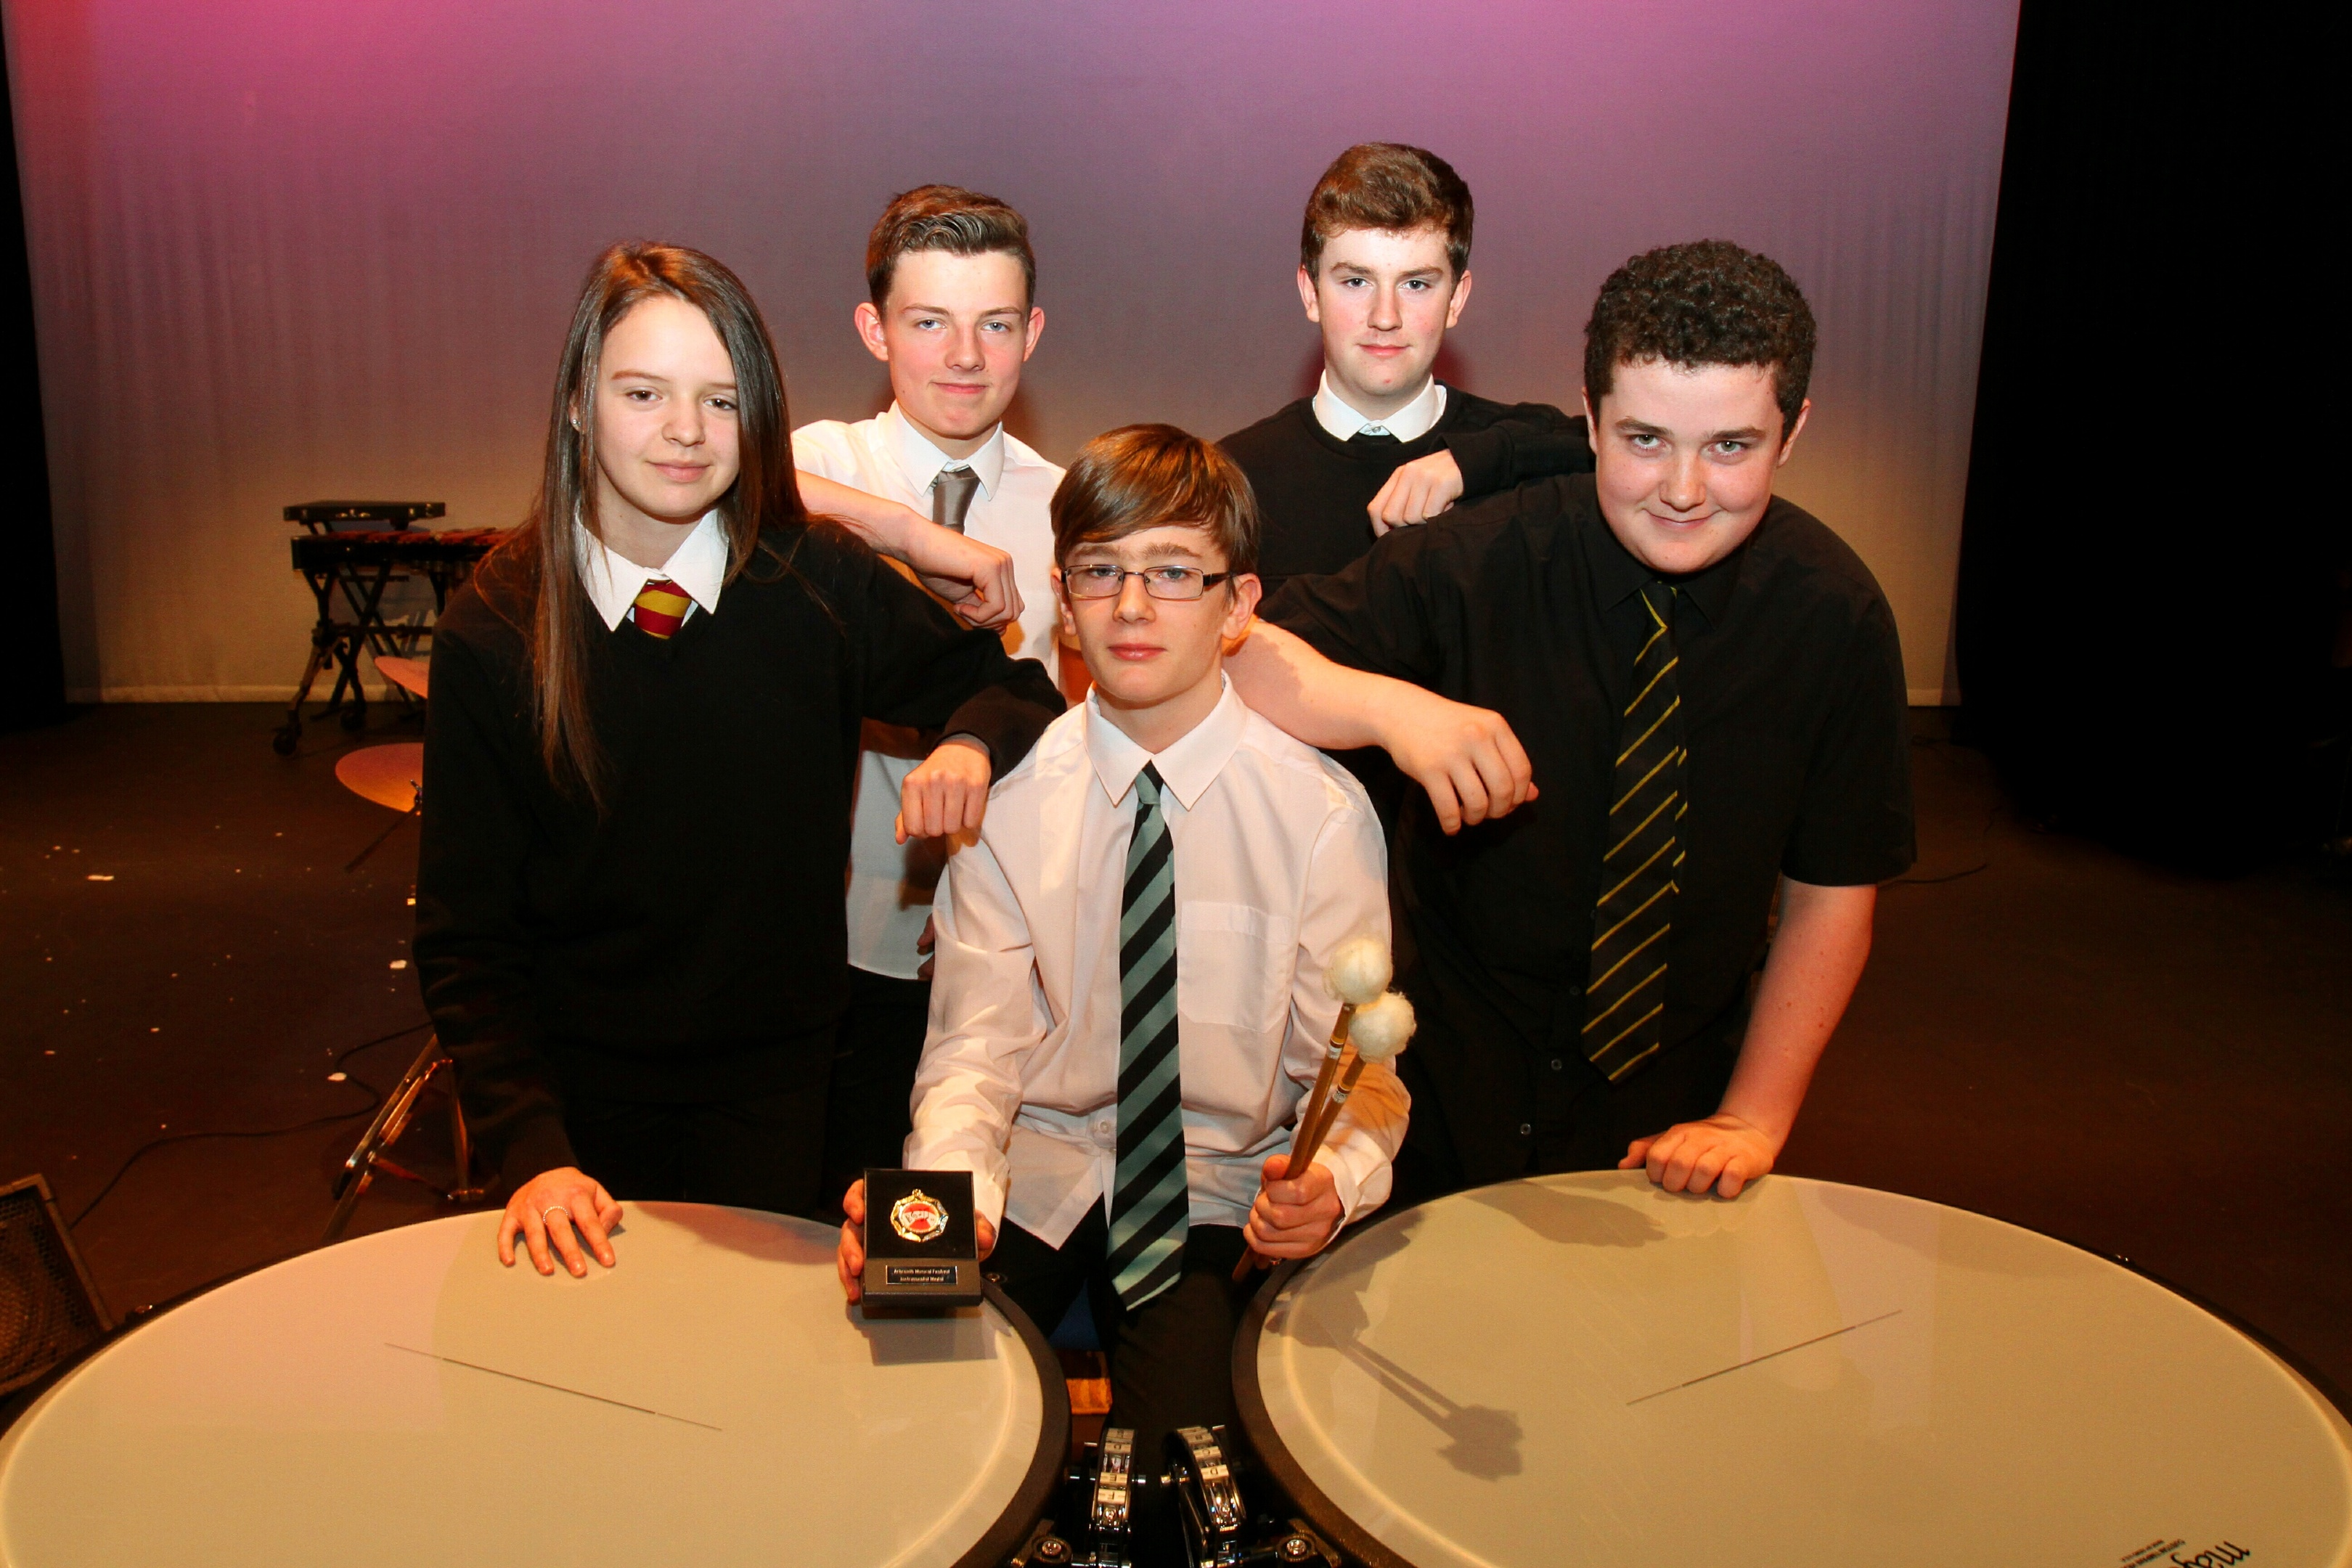 Class 109 timpani featuring Sam Ramsay  from Webster's HS (seated) with Ryan Cull of Arbroath Academy, Zoe McLachlan of Montrose Academy, Josh Craigie from Carnoustie HS and Callum Phillip, Arbroath Academy.